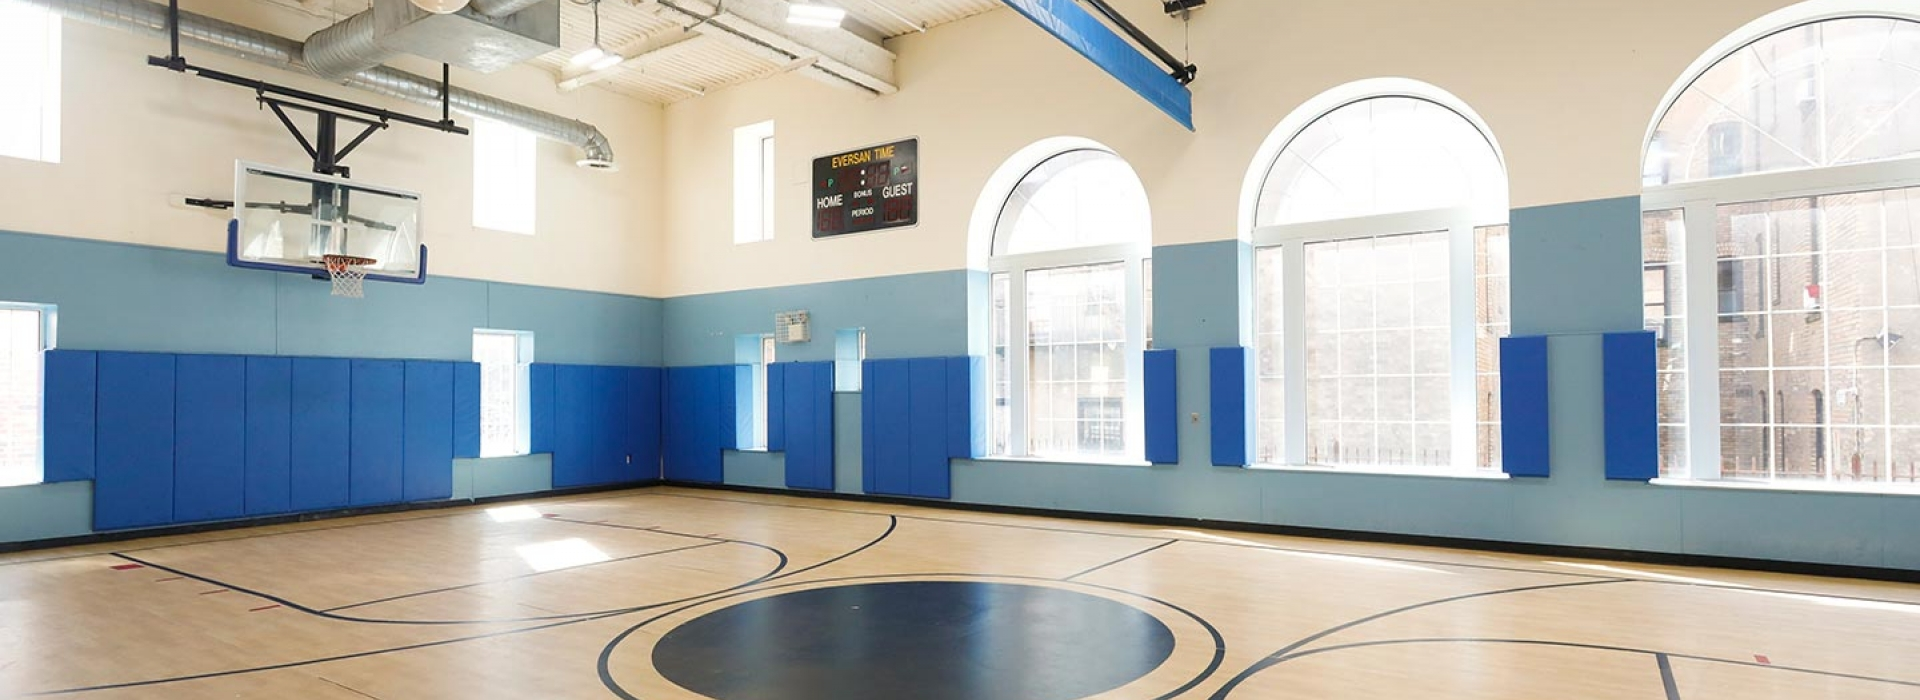 Ridgewood YMCA, gym, pool, and much more in Queens | New York City's